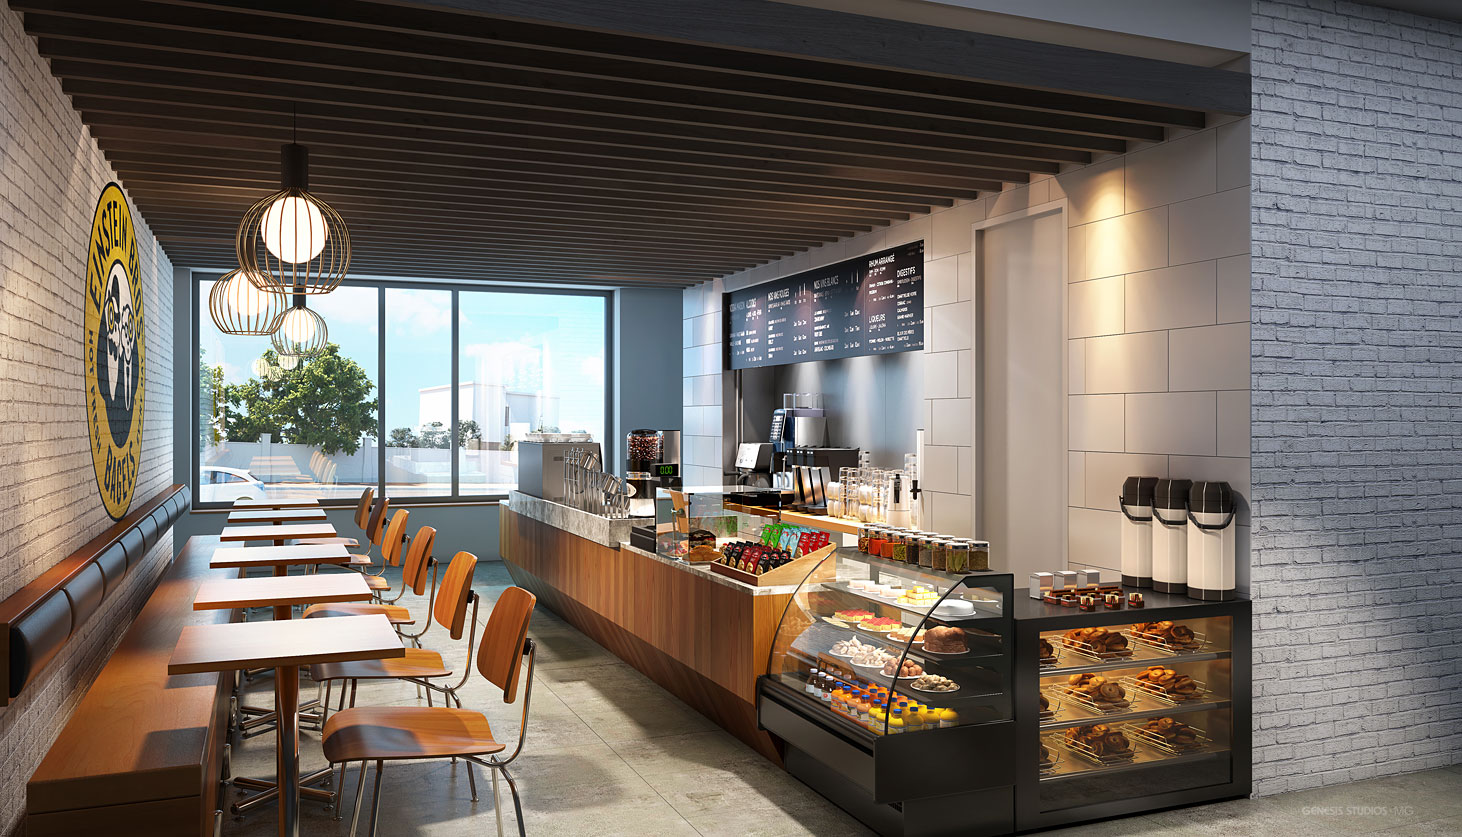 818007 Digital Photorealistic Architectural Renderings of Einstein Bros Bagels for Shea Design